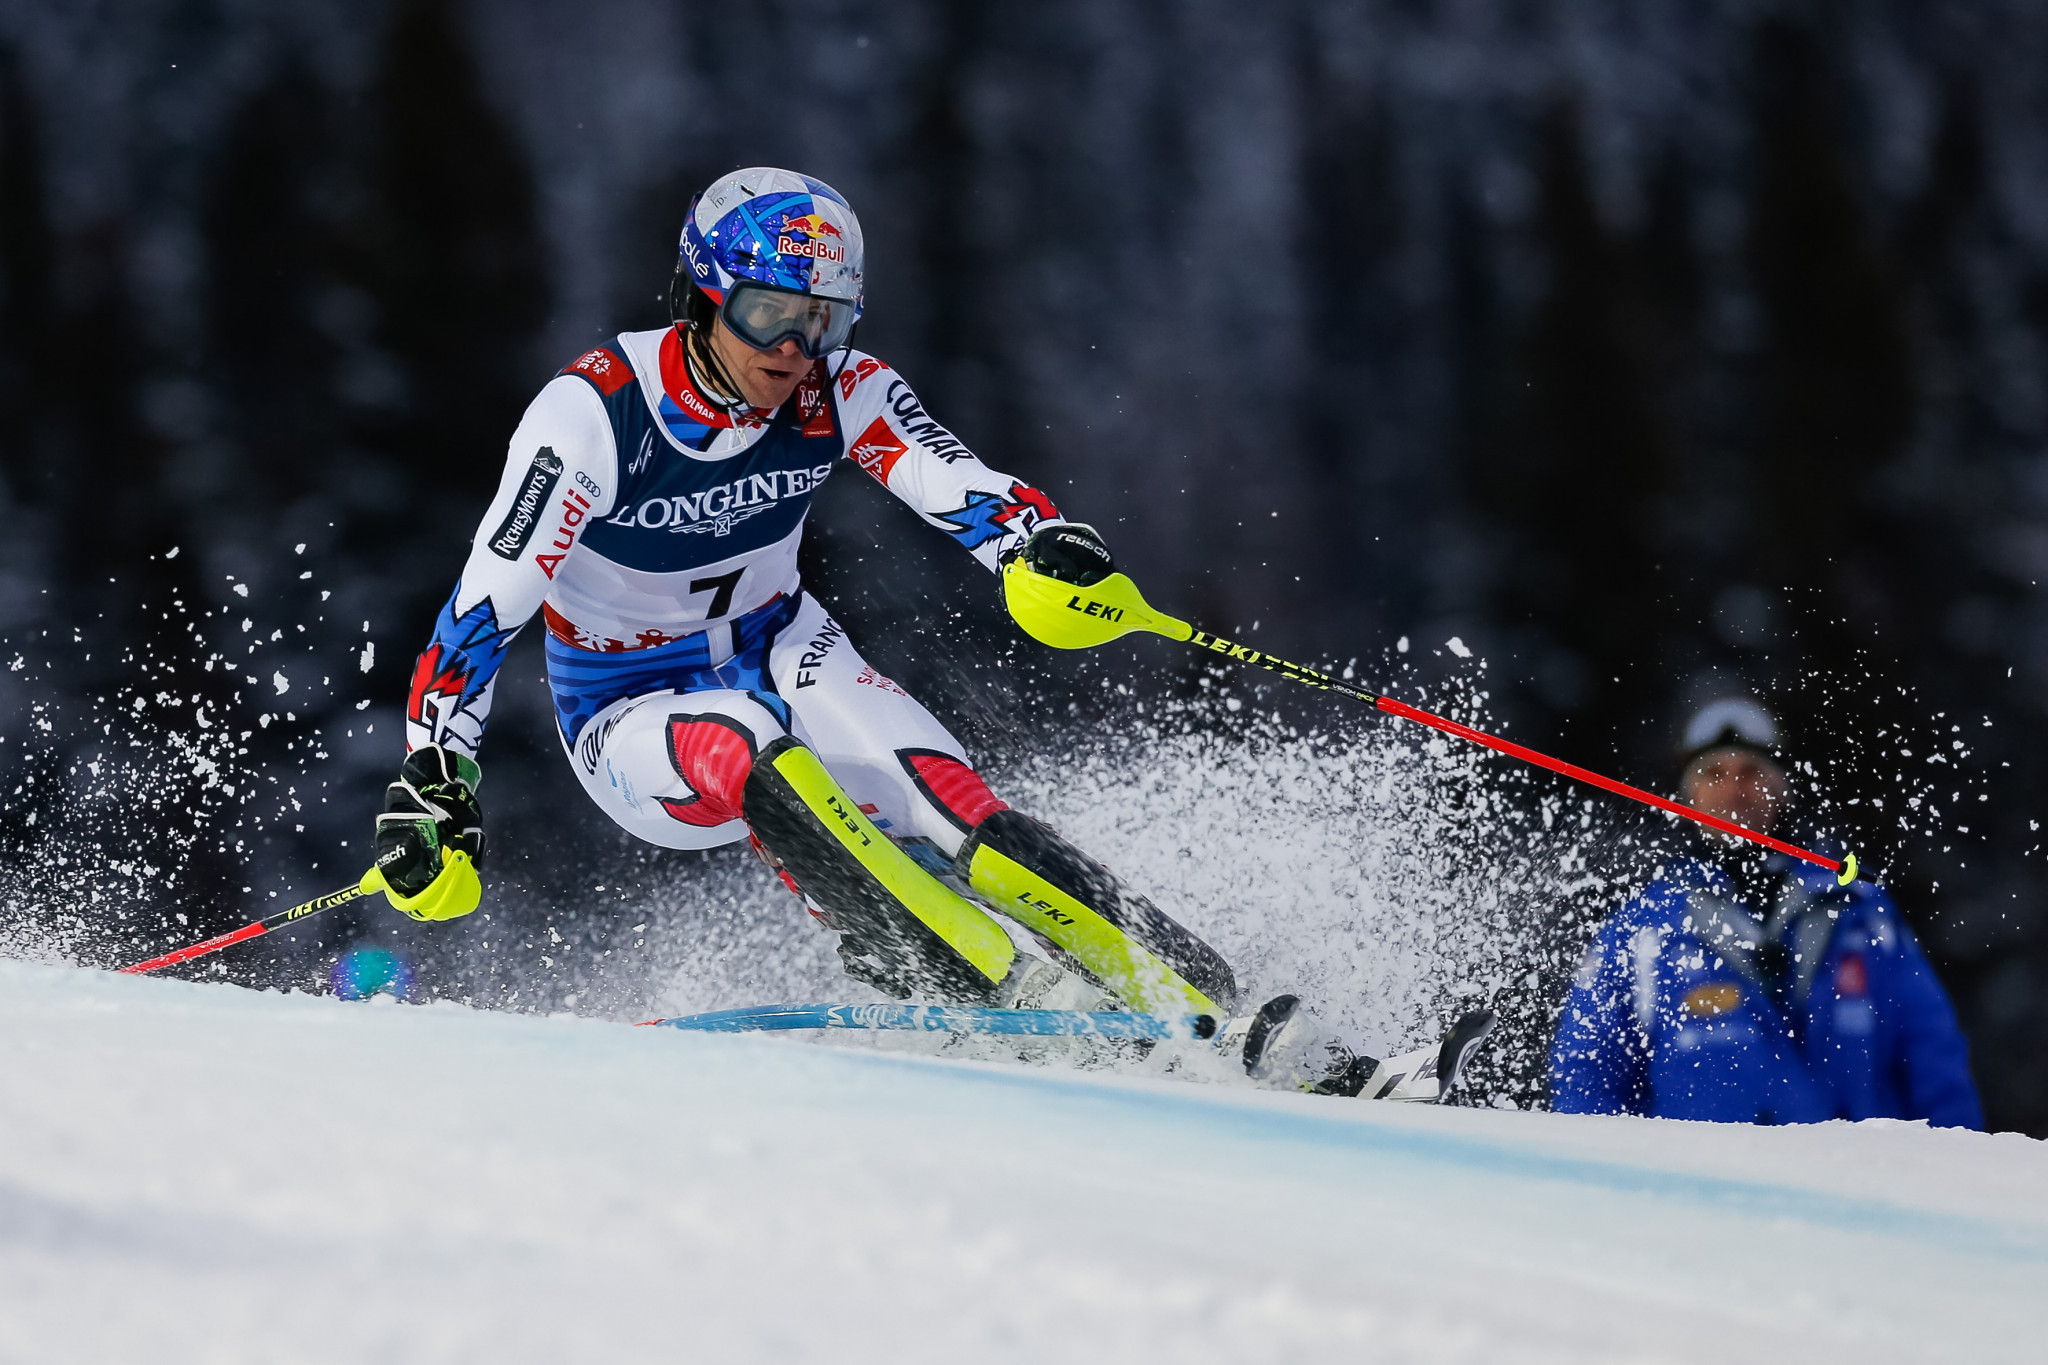 Alexis Pinturault used his slalom skill to move into gold medal position ©Getty Images